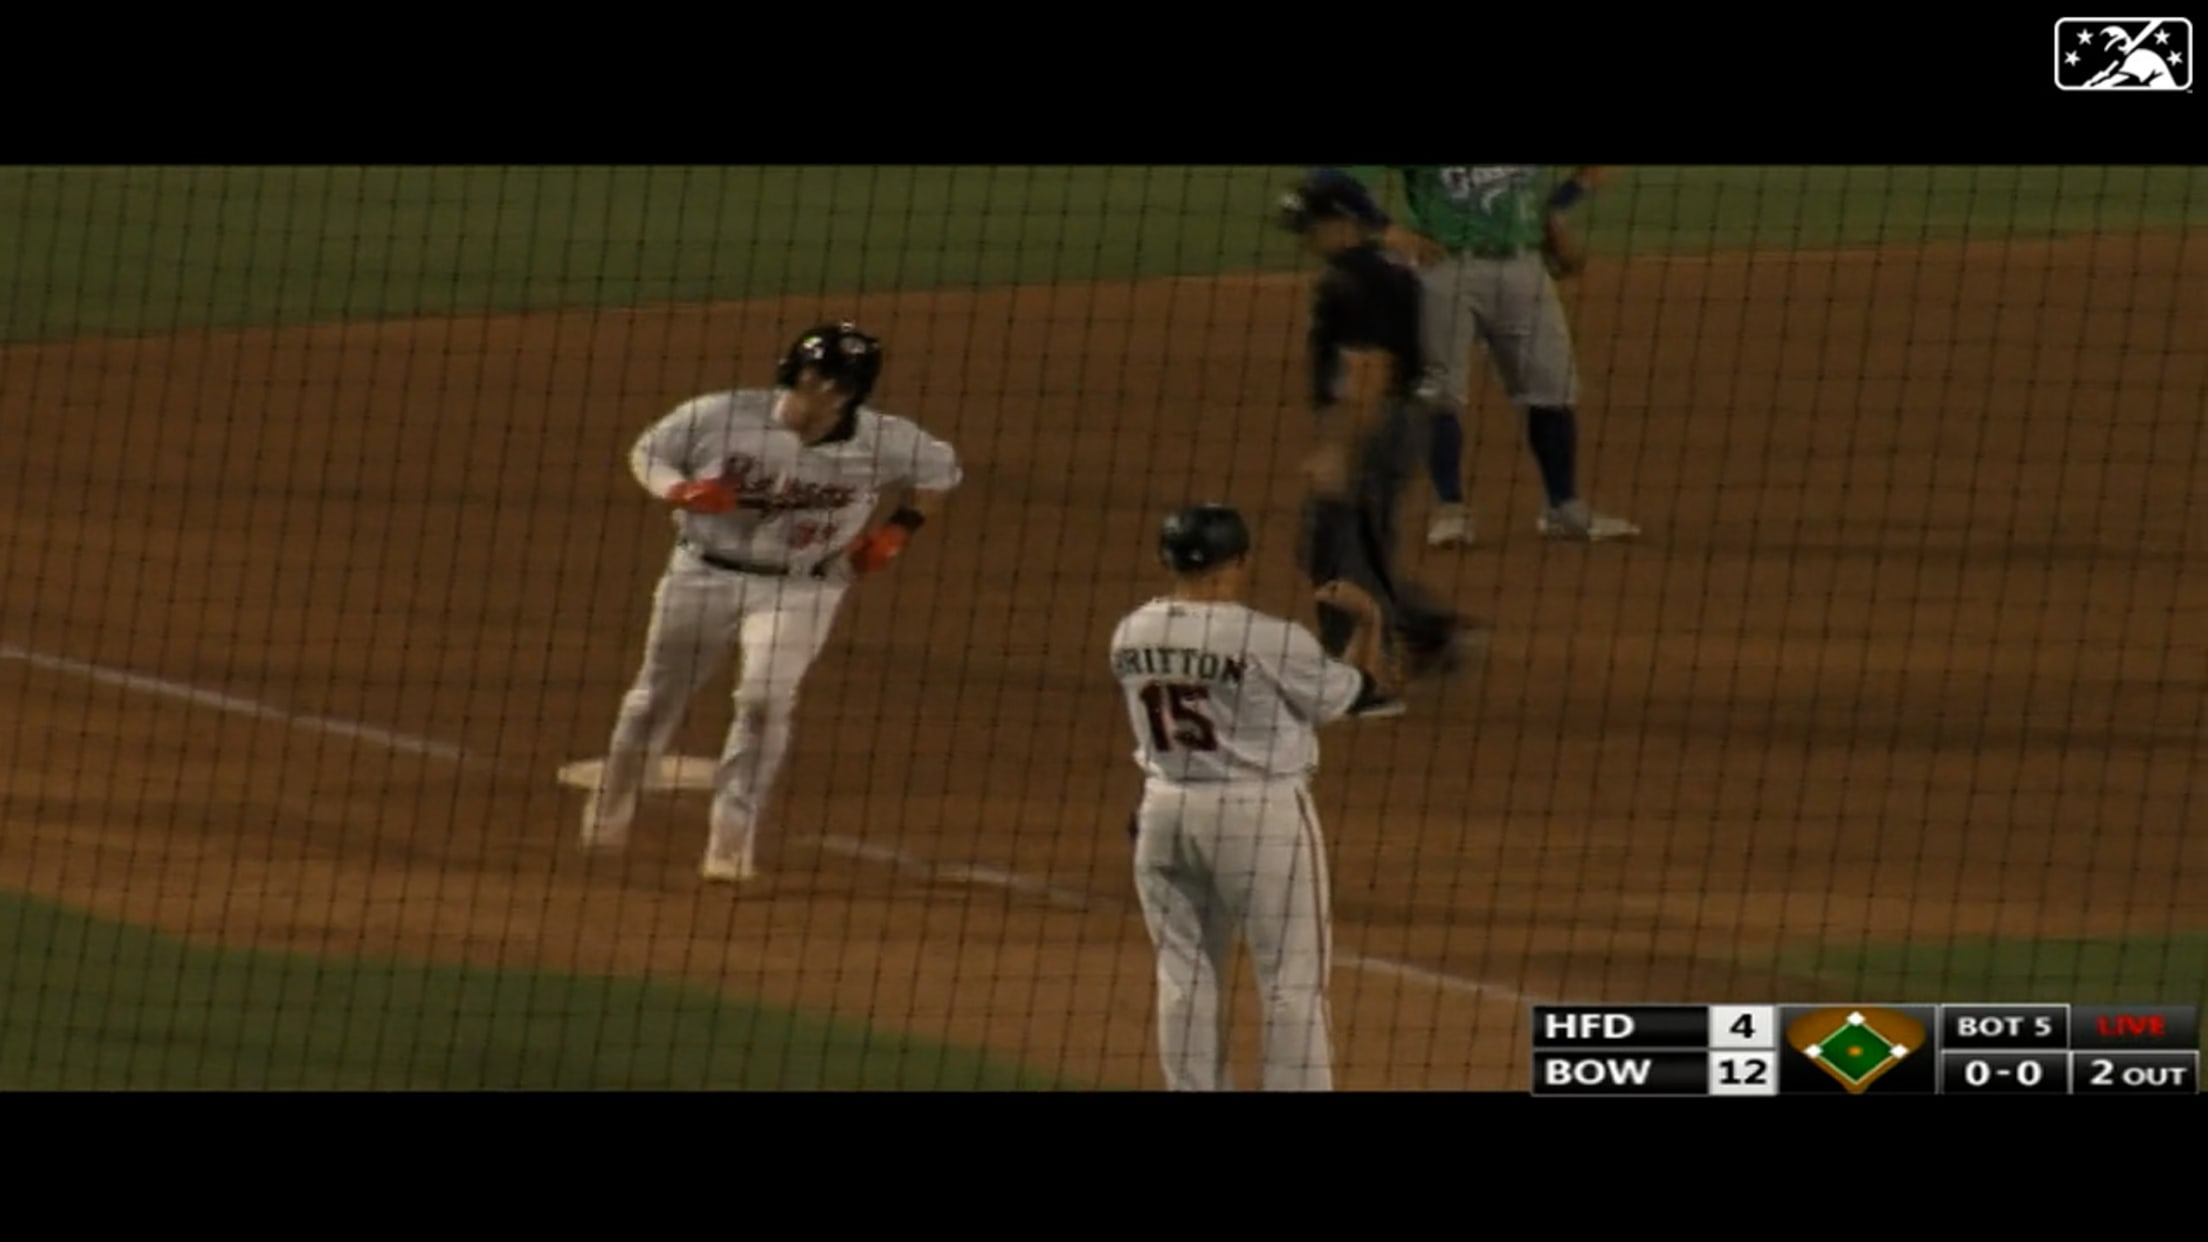 Rutschman homers from both sides